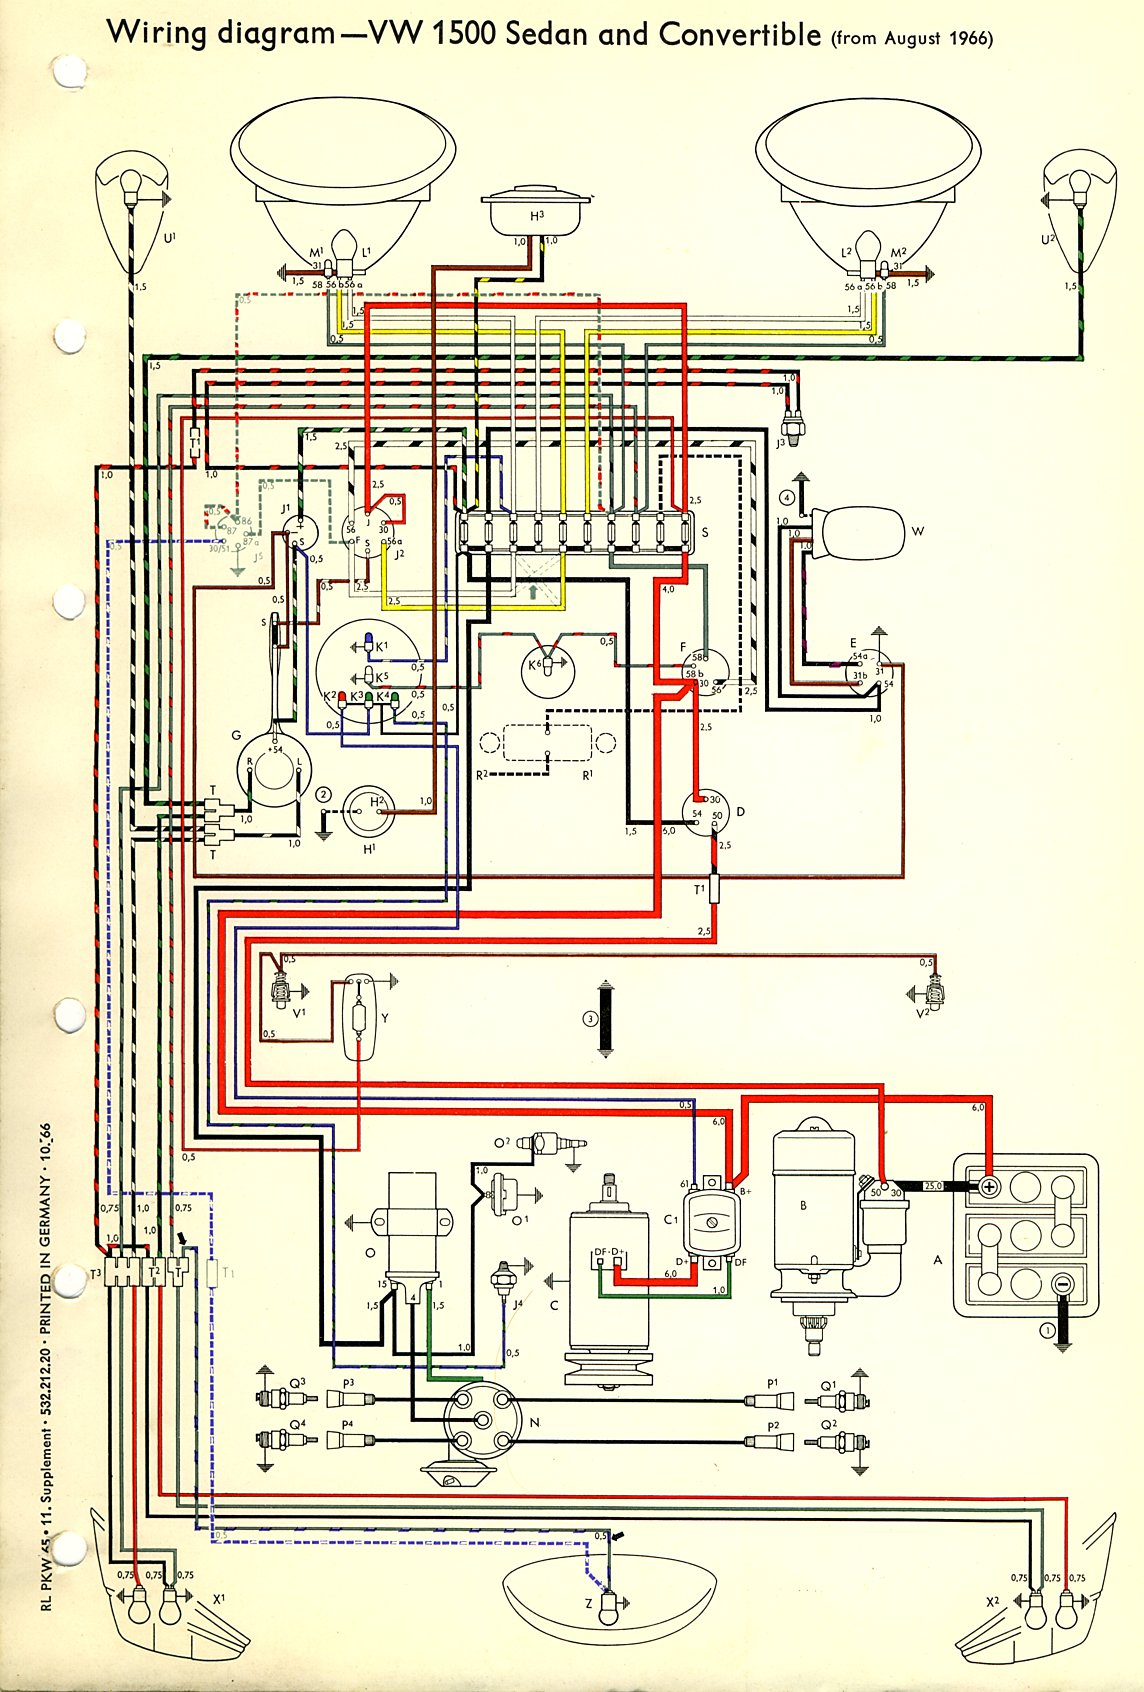 thesamba com type 1 wiring diagrams rh thesamba com vw beetle wiring diagram beetle wiring diagram 1966